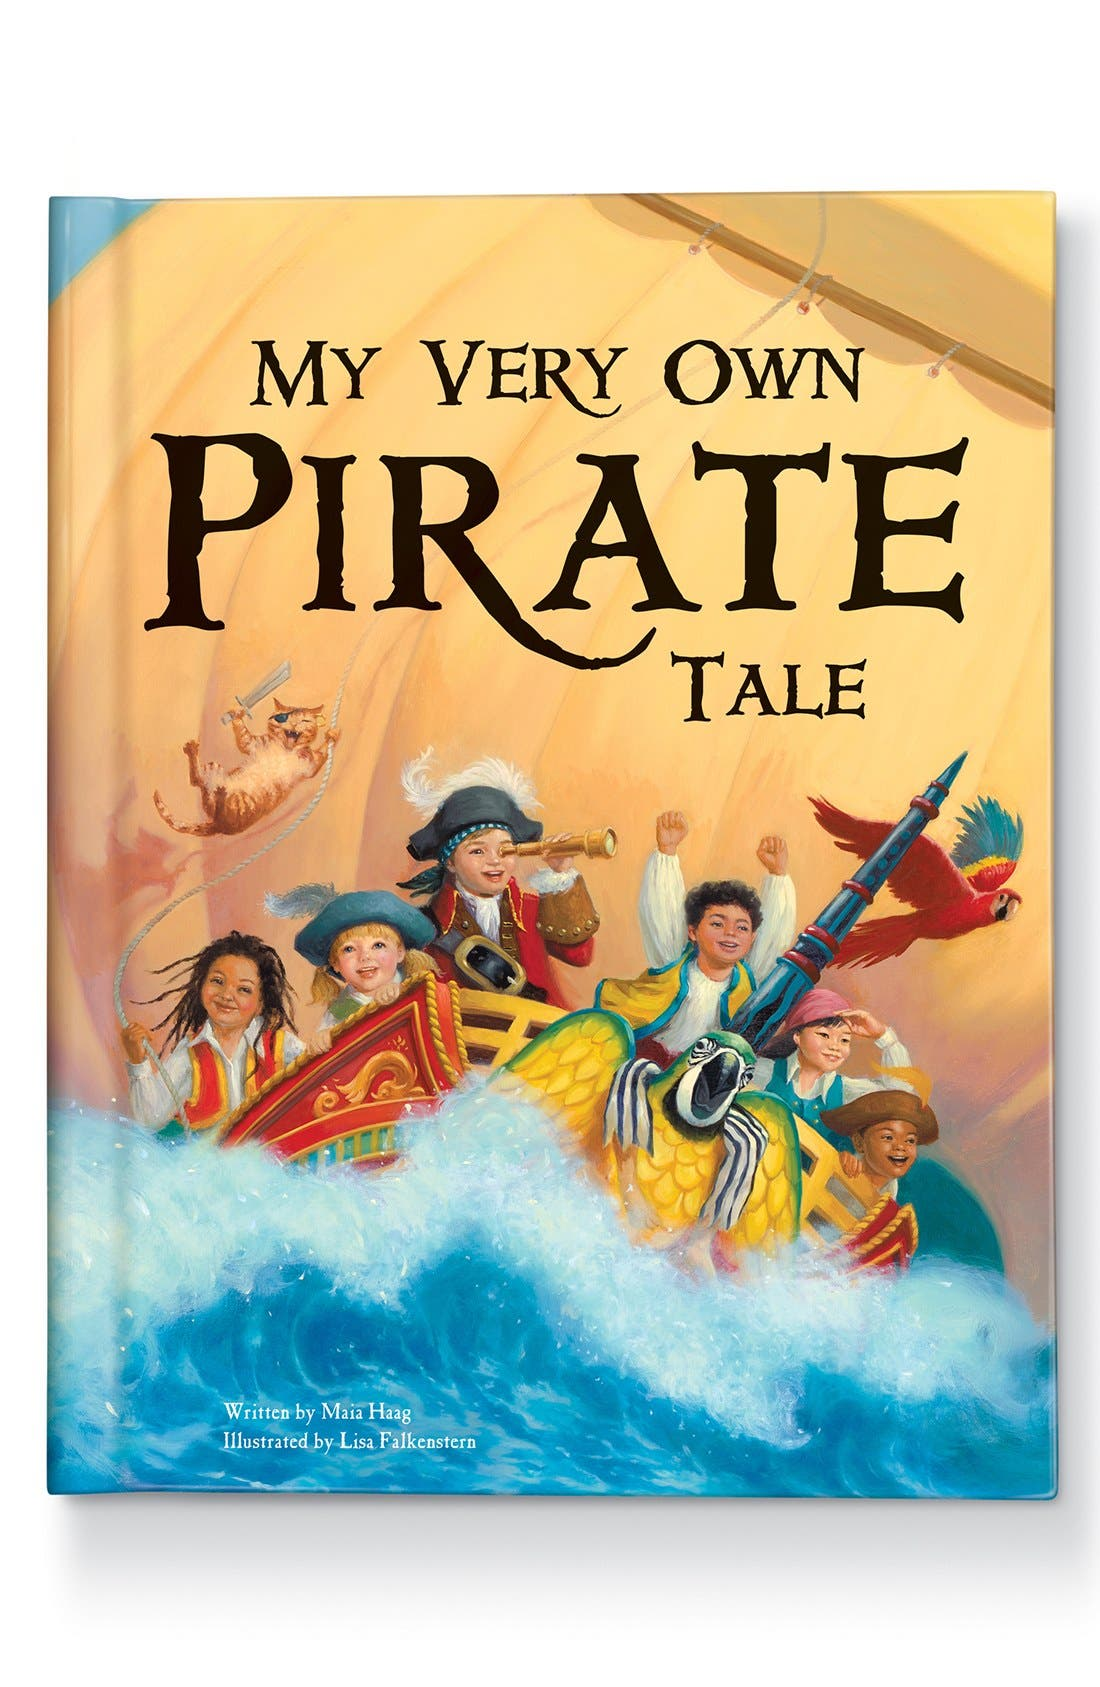 'My Very Own Pirate Tale' Personalized Hardcover Book,                             Main thumbnail 1, color,                             NONE